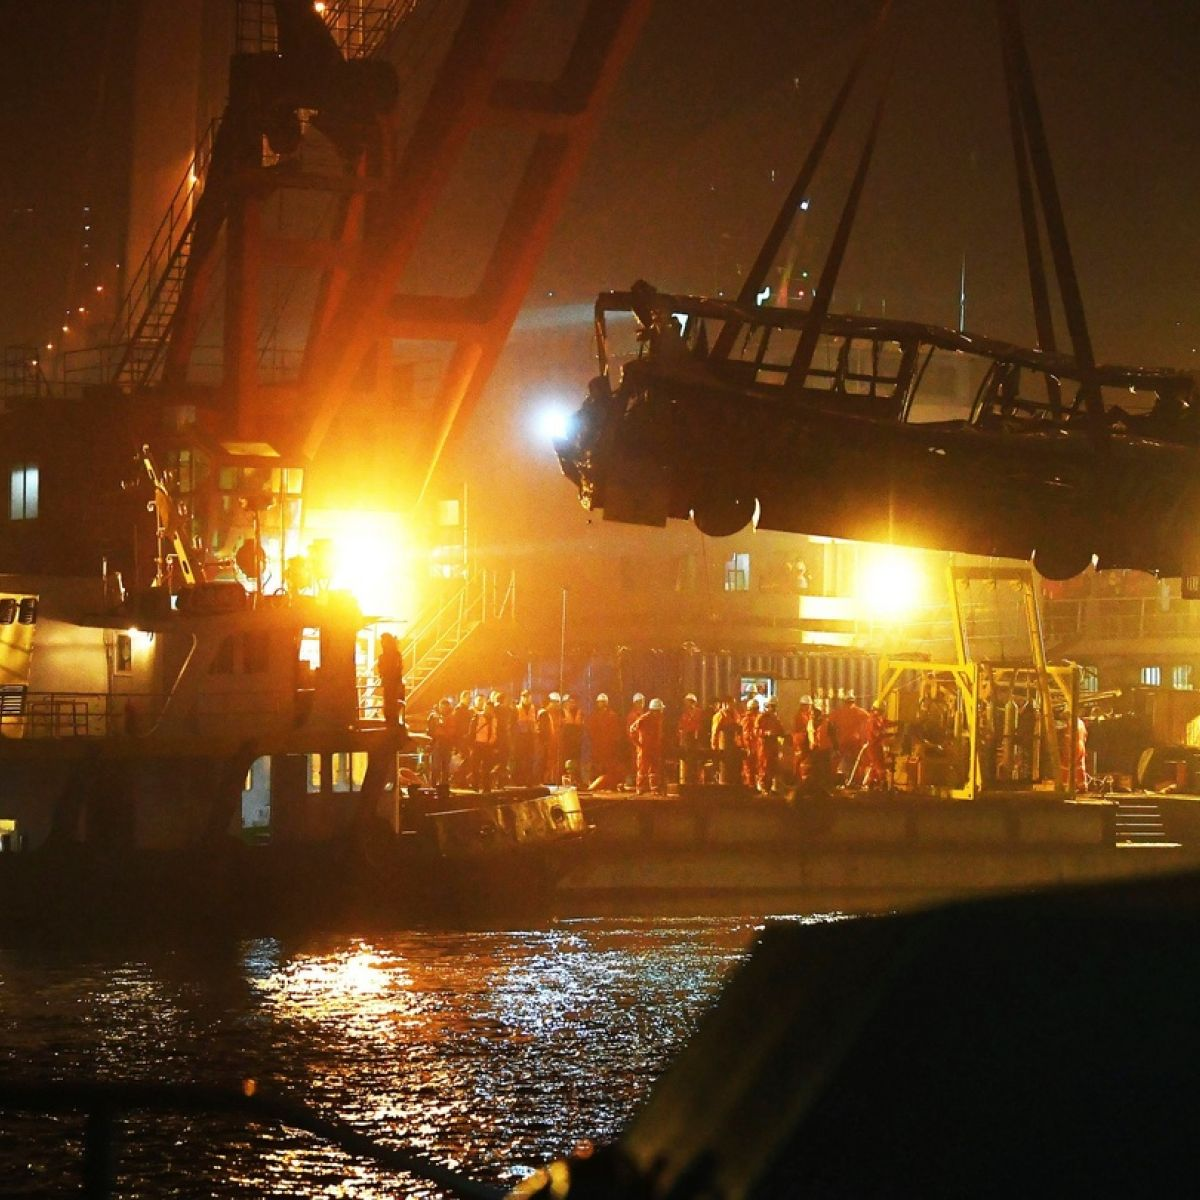 Uproar in China after fight on bus leads to fatal bridge plunge